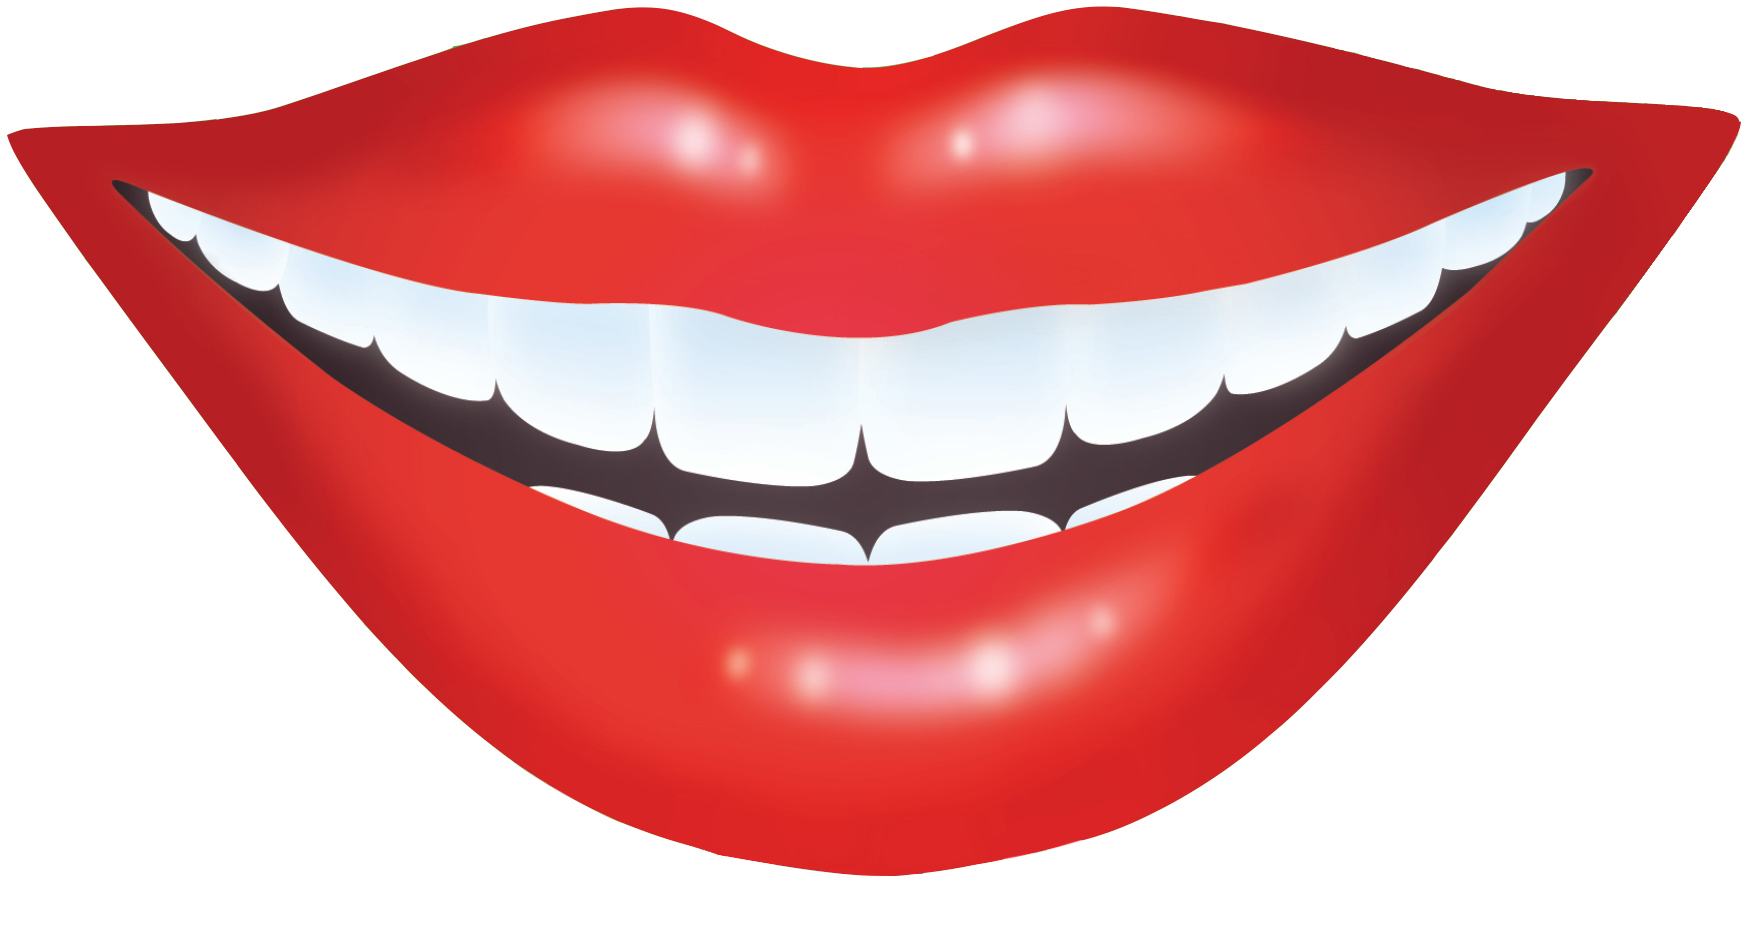 Teeth clipart smiley mouth Teeth Smile View of clipart